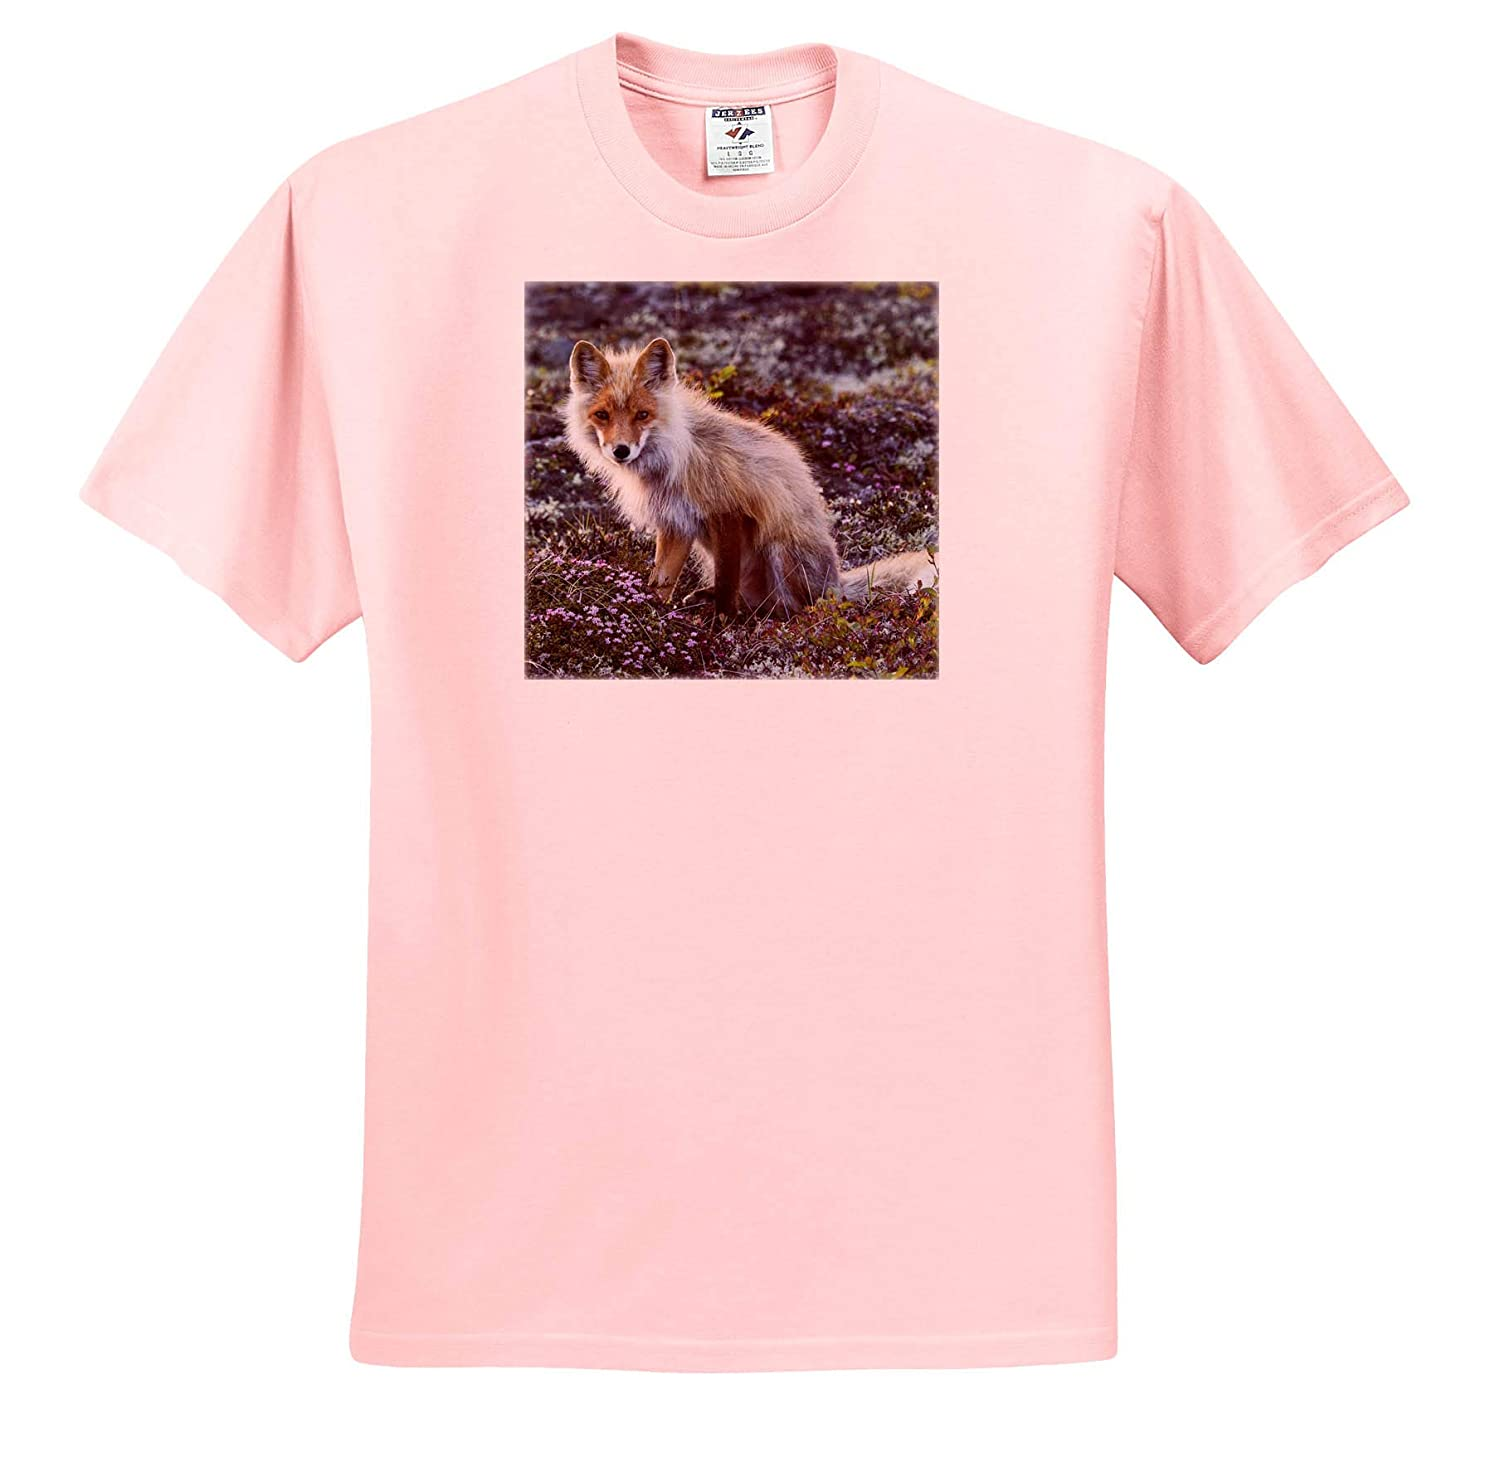 3dRose Danita Delimont Adult T-Shirt XL Red Fox ts/_314508 Tundra in Bloom Foxes